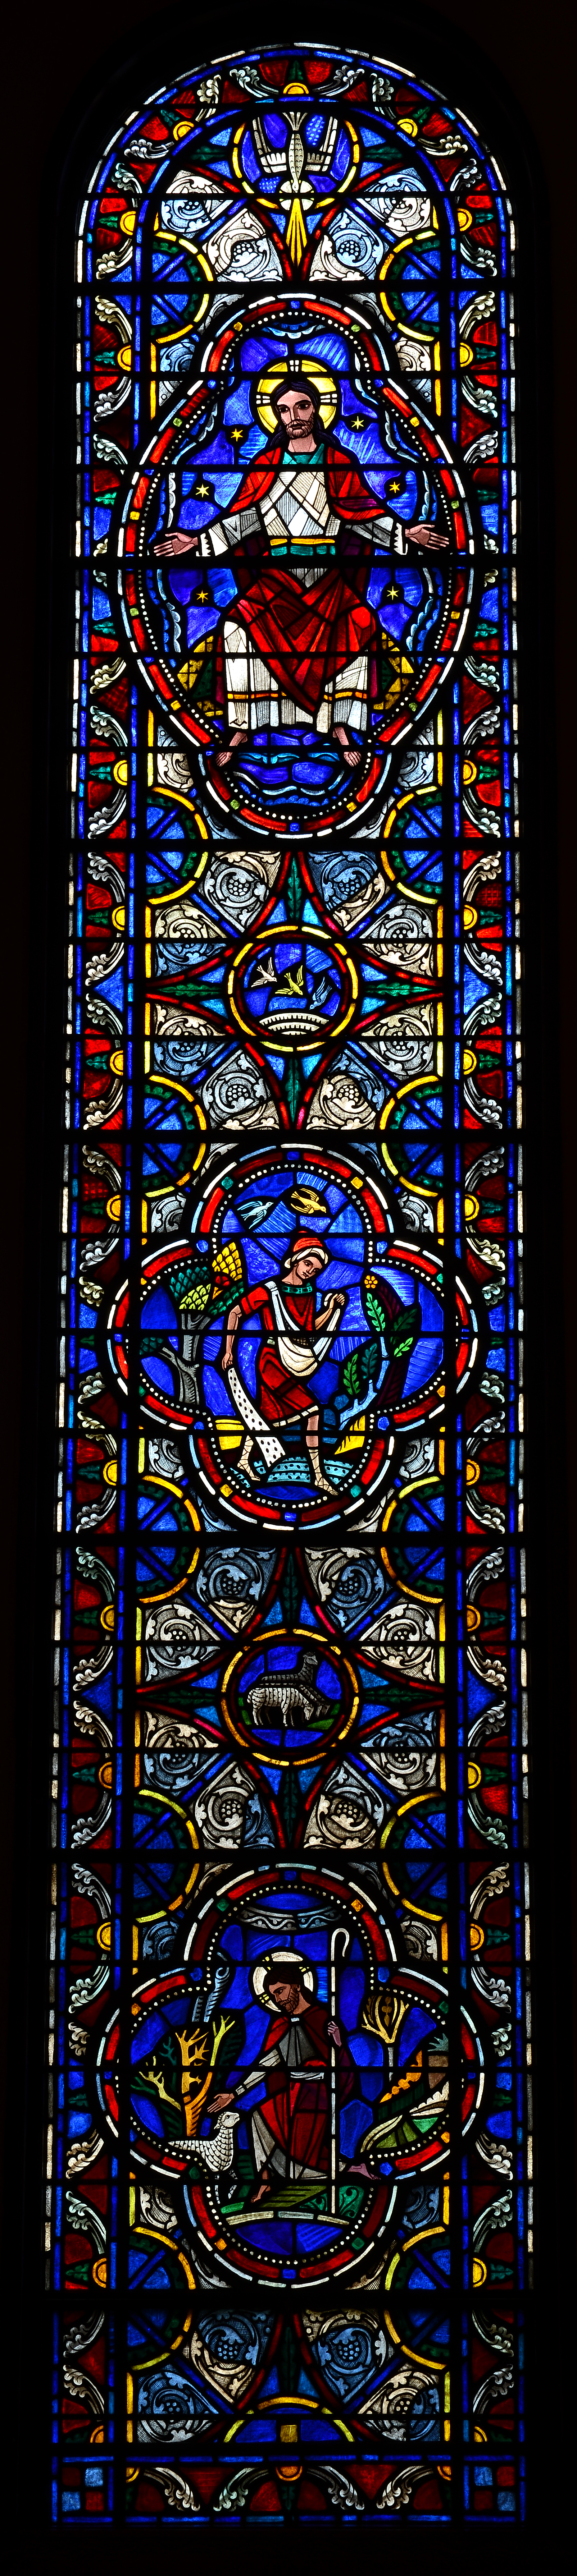 Cram Was One Of The Founding Members Medieval Academy America Given Importance Architects In Selection Stained Glass Studios